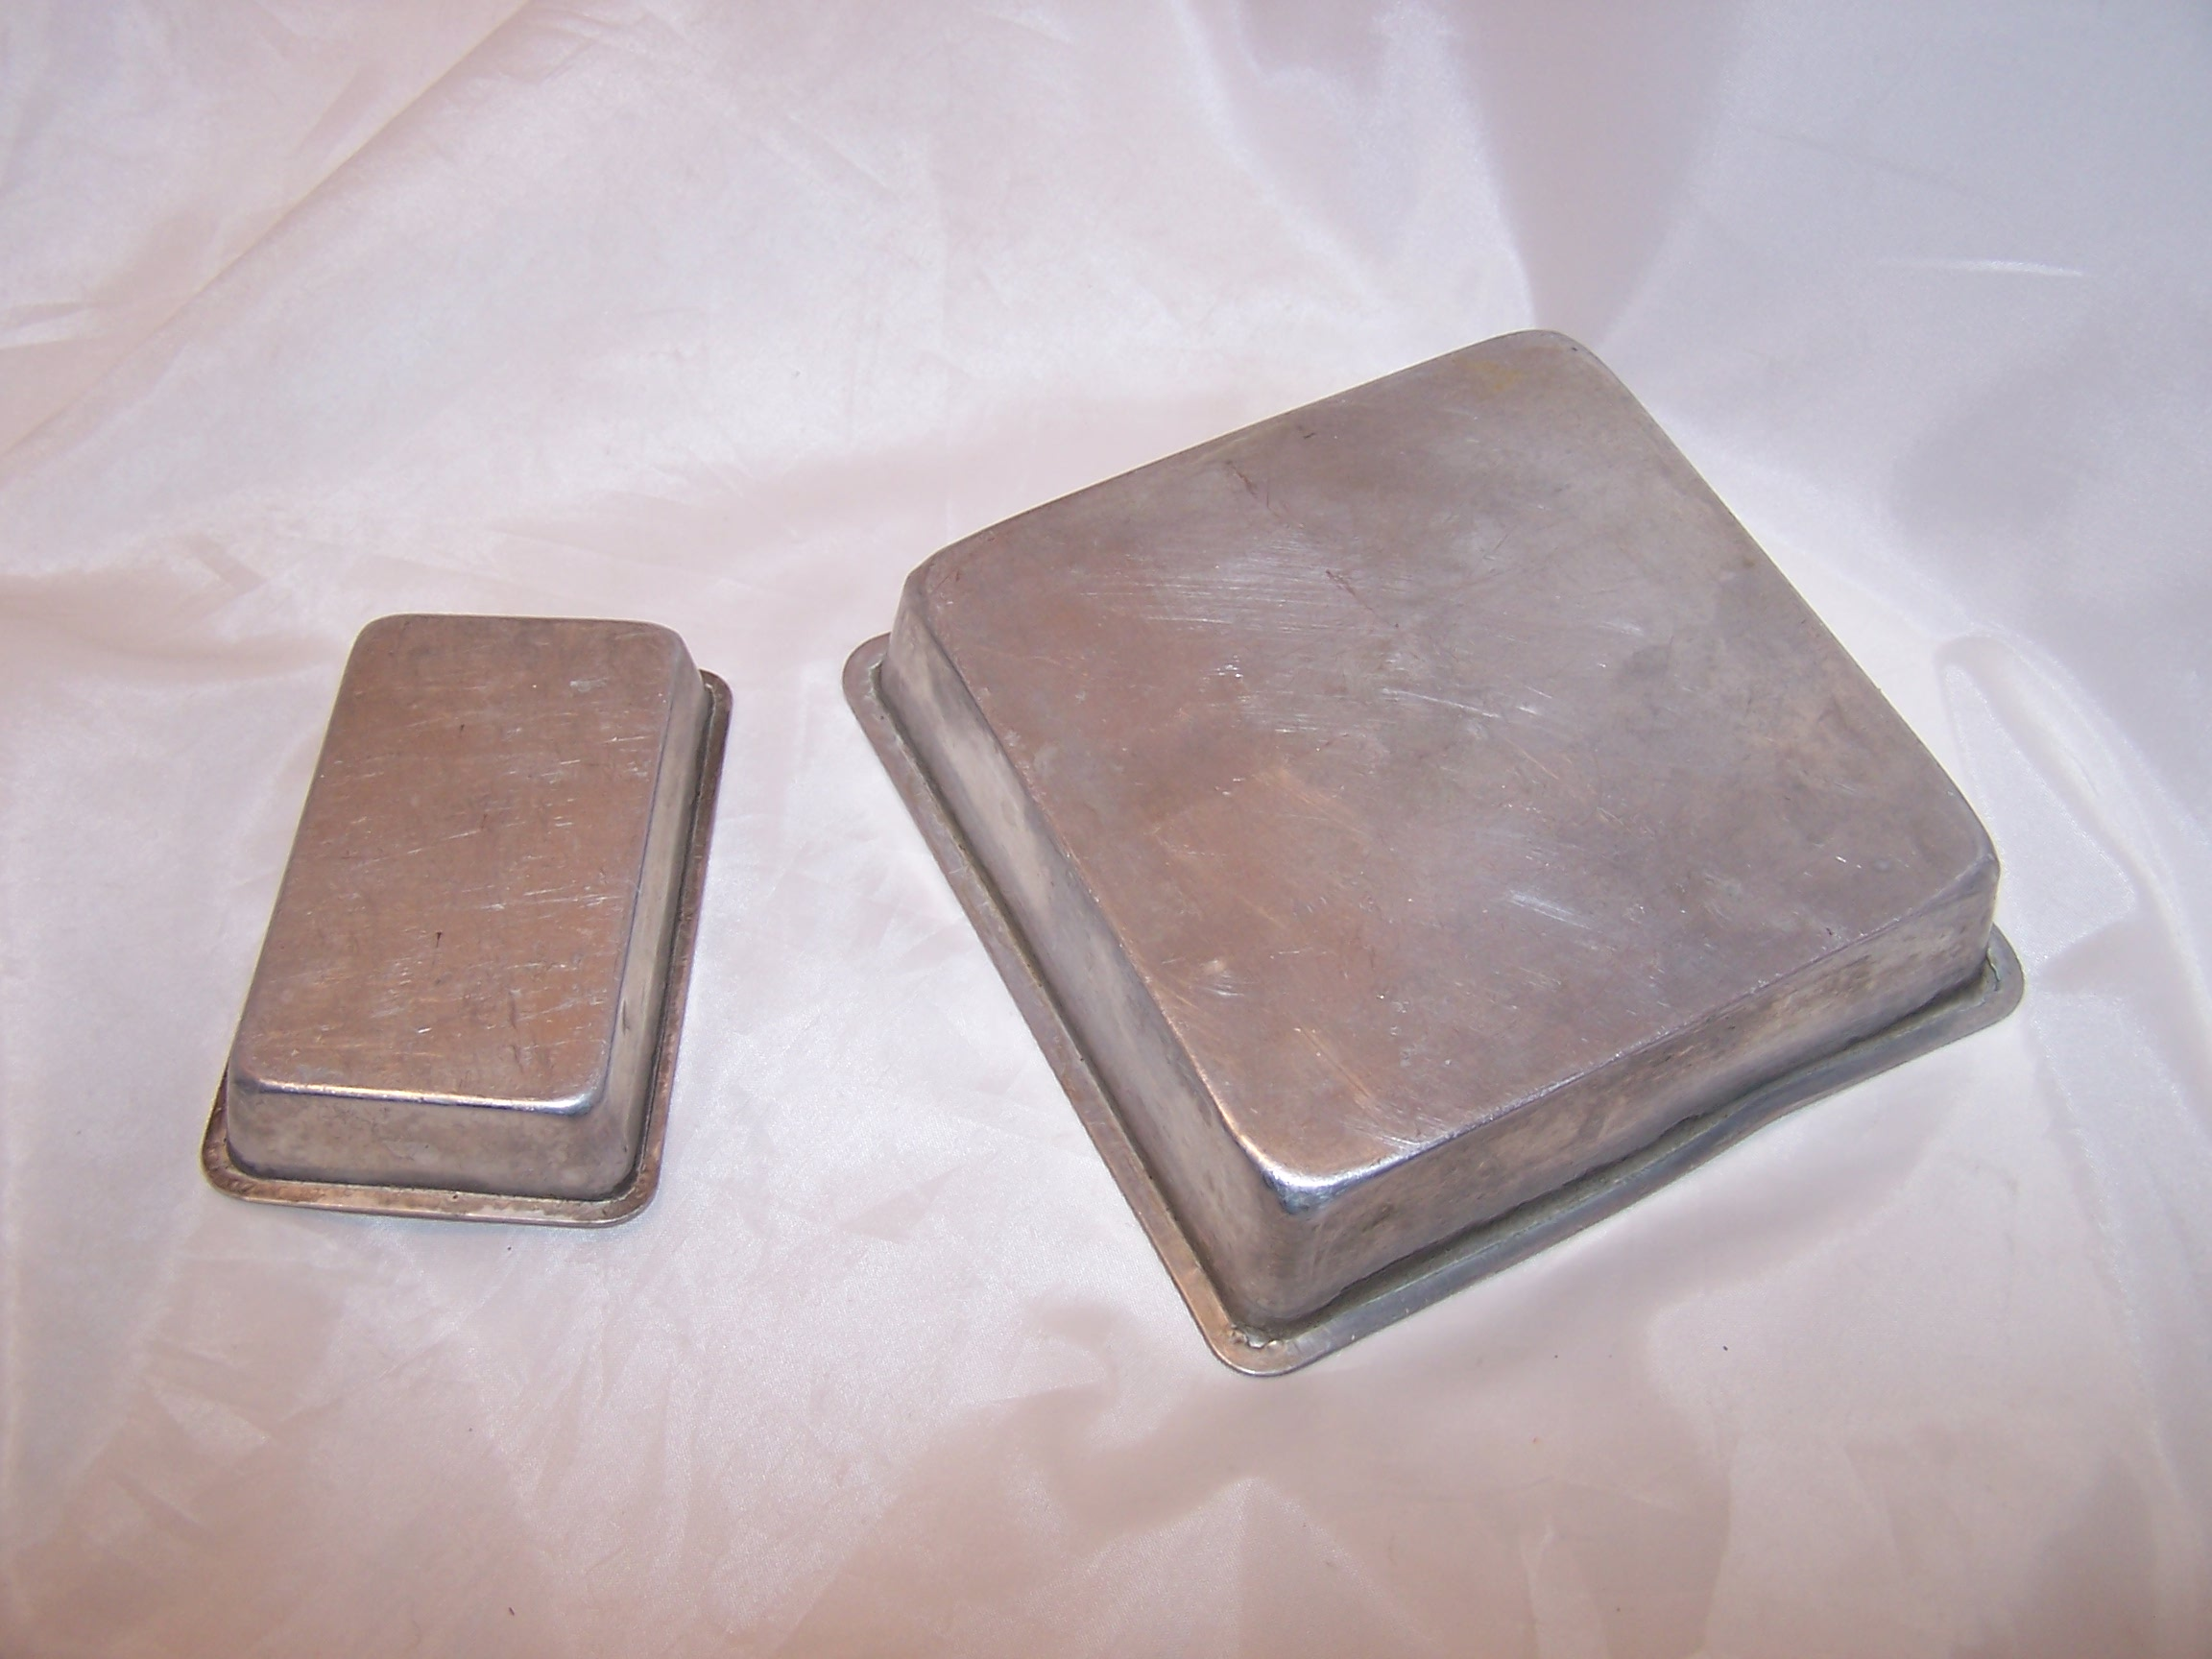 Image 1 of Toy Baking Pans, Childs Cookware, Aluminum